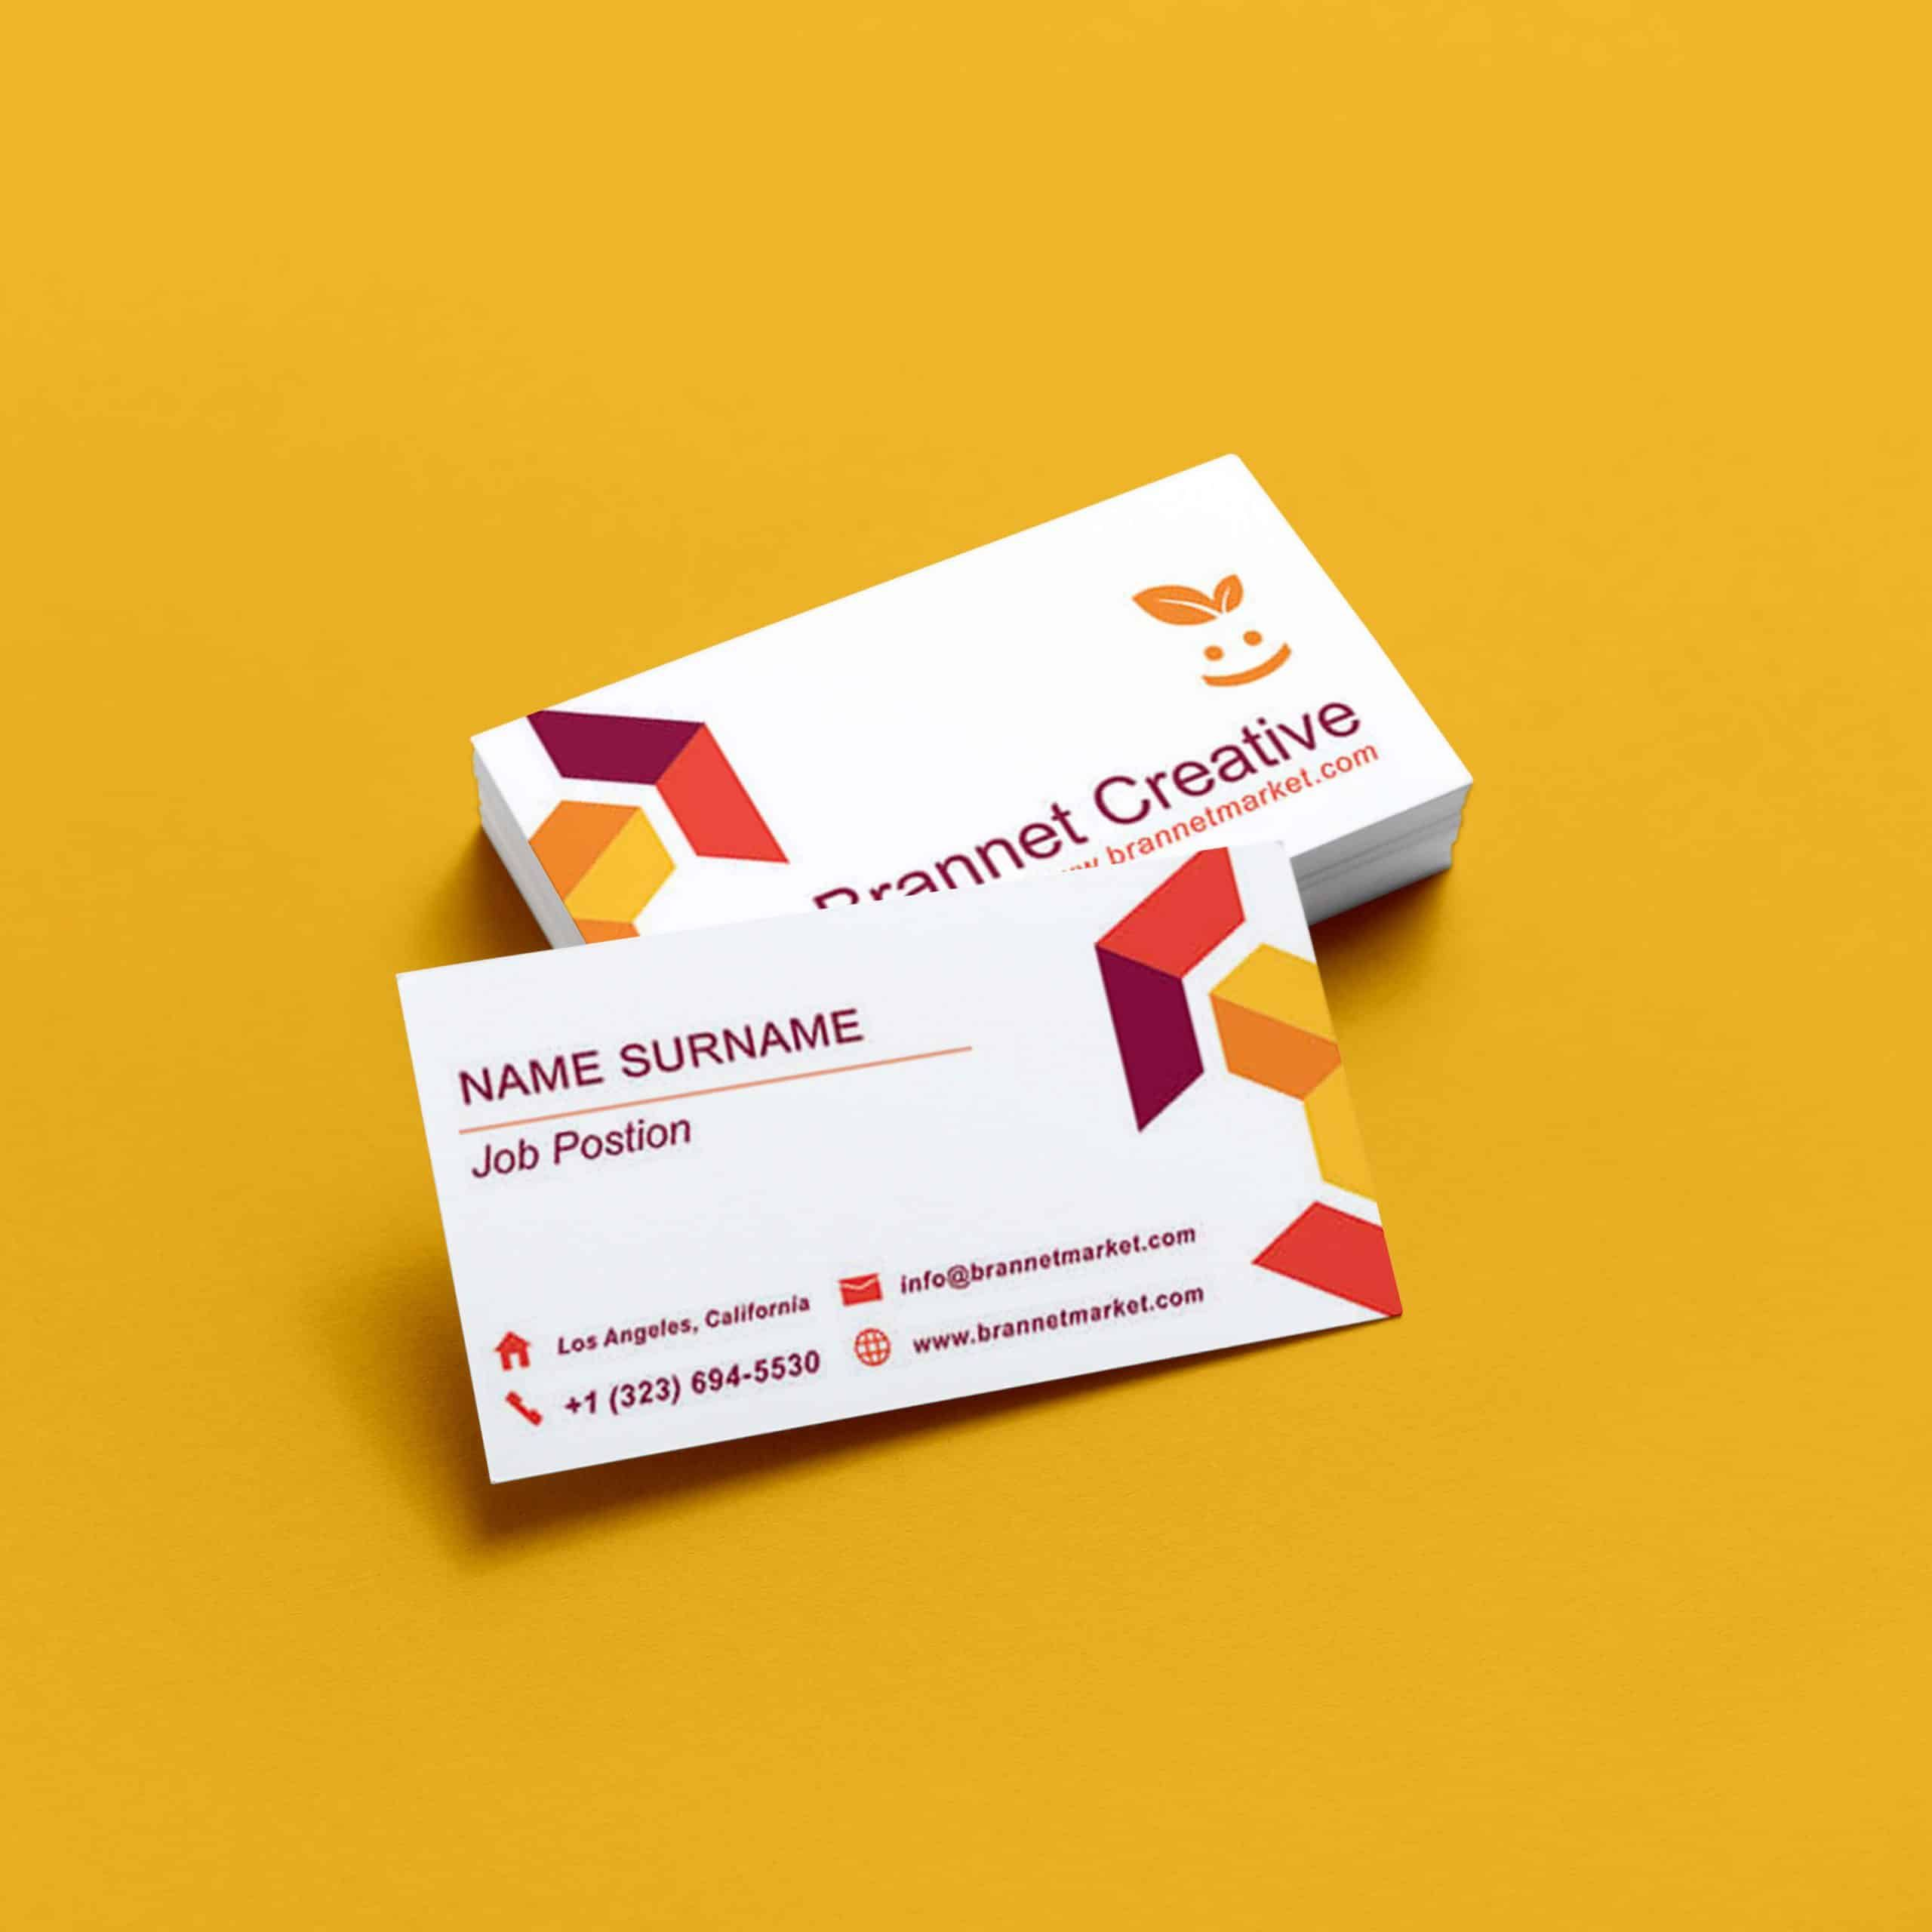 Creative Cube Shapes Business Card Brannet Market Shaped Business Cards Business Cards Creative Premium Business Cards